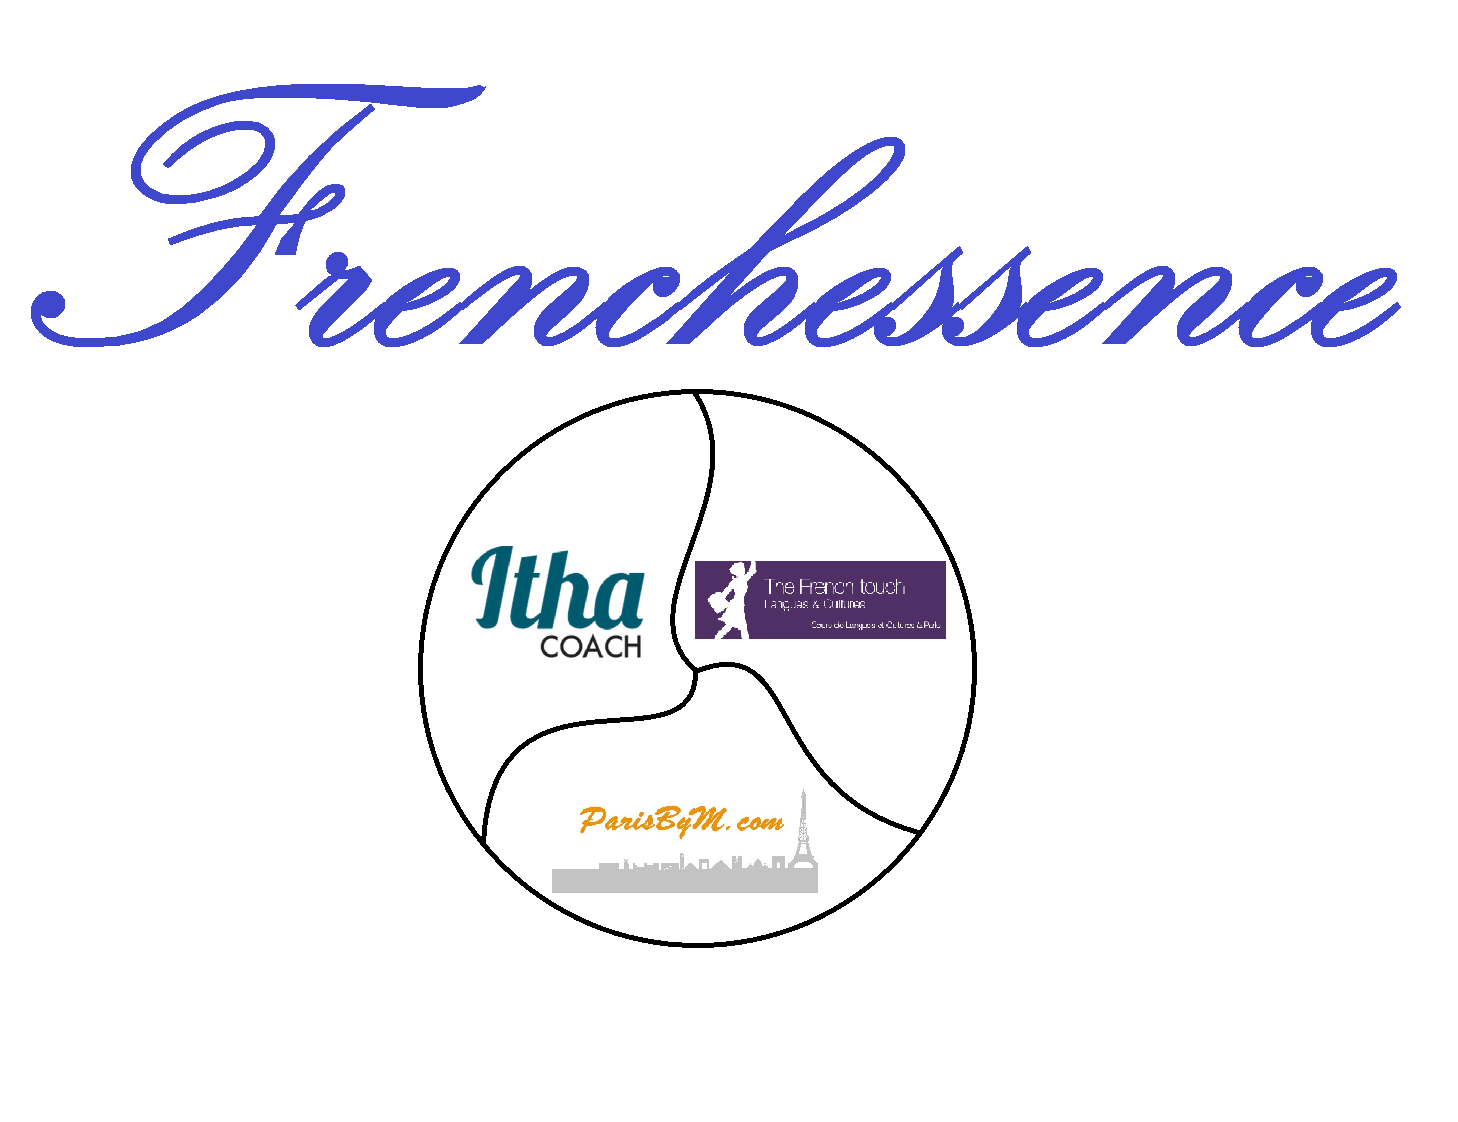 Frenchessence, network of women entrepreneur